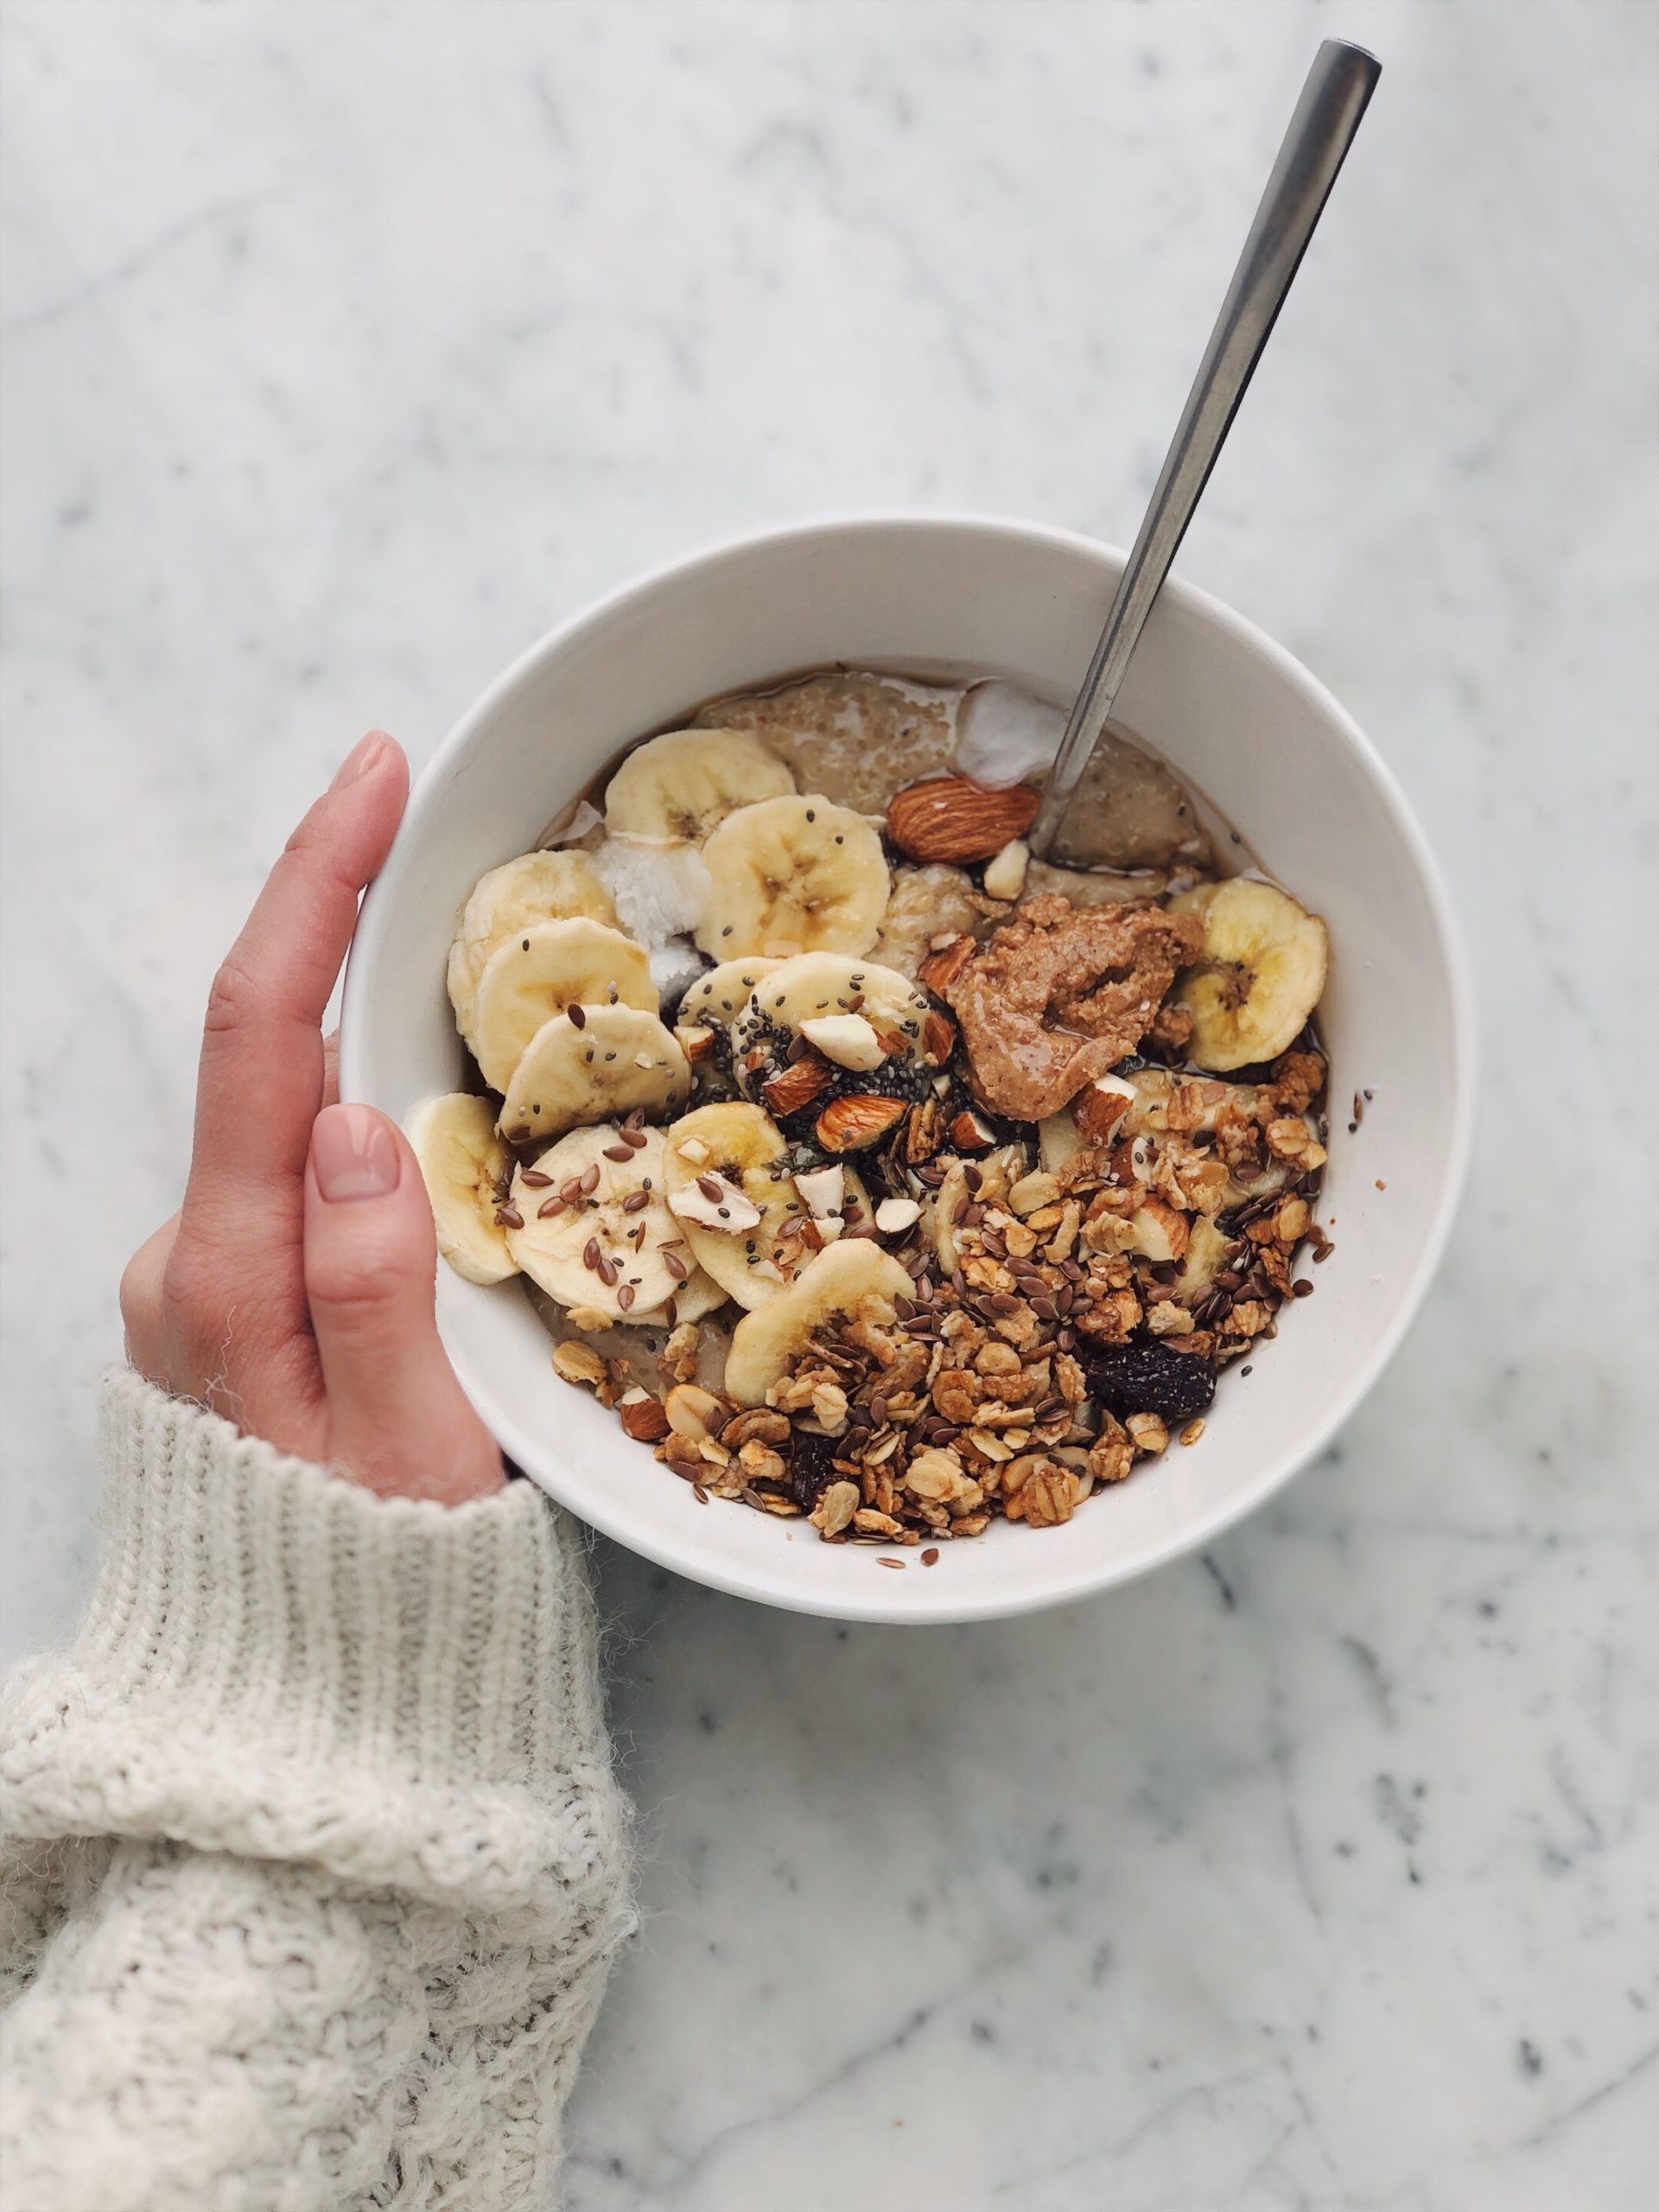 Best Healthy Breakfast: Ideas For Your Toddler